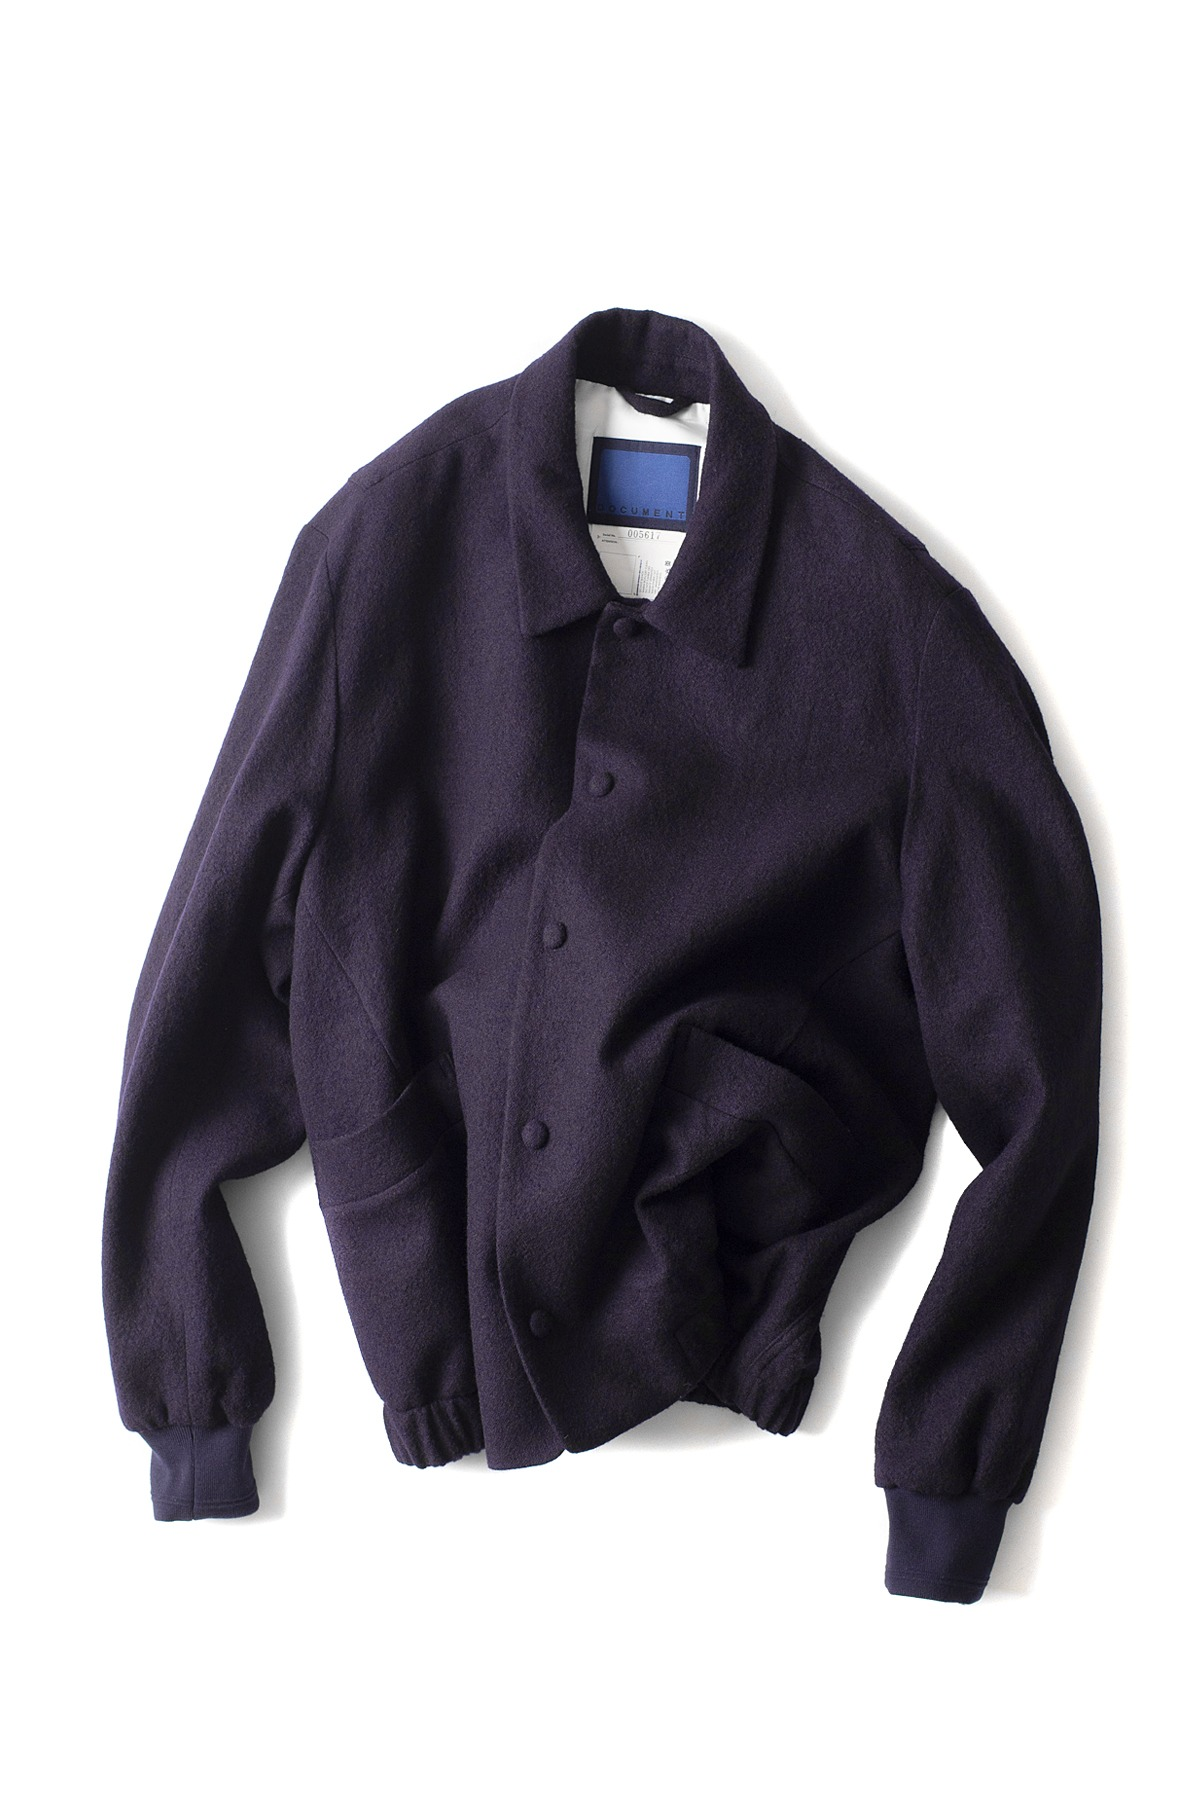 Document : Documentation Boucle Wool Blouson (Navy)